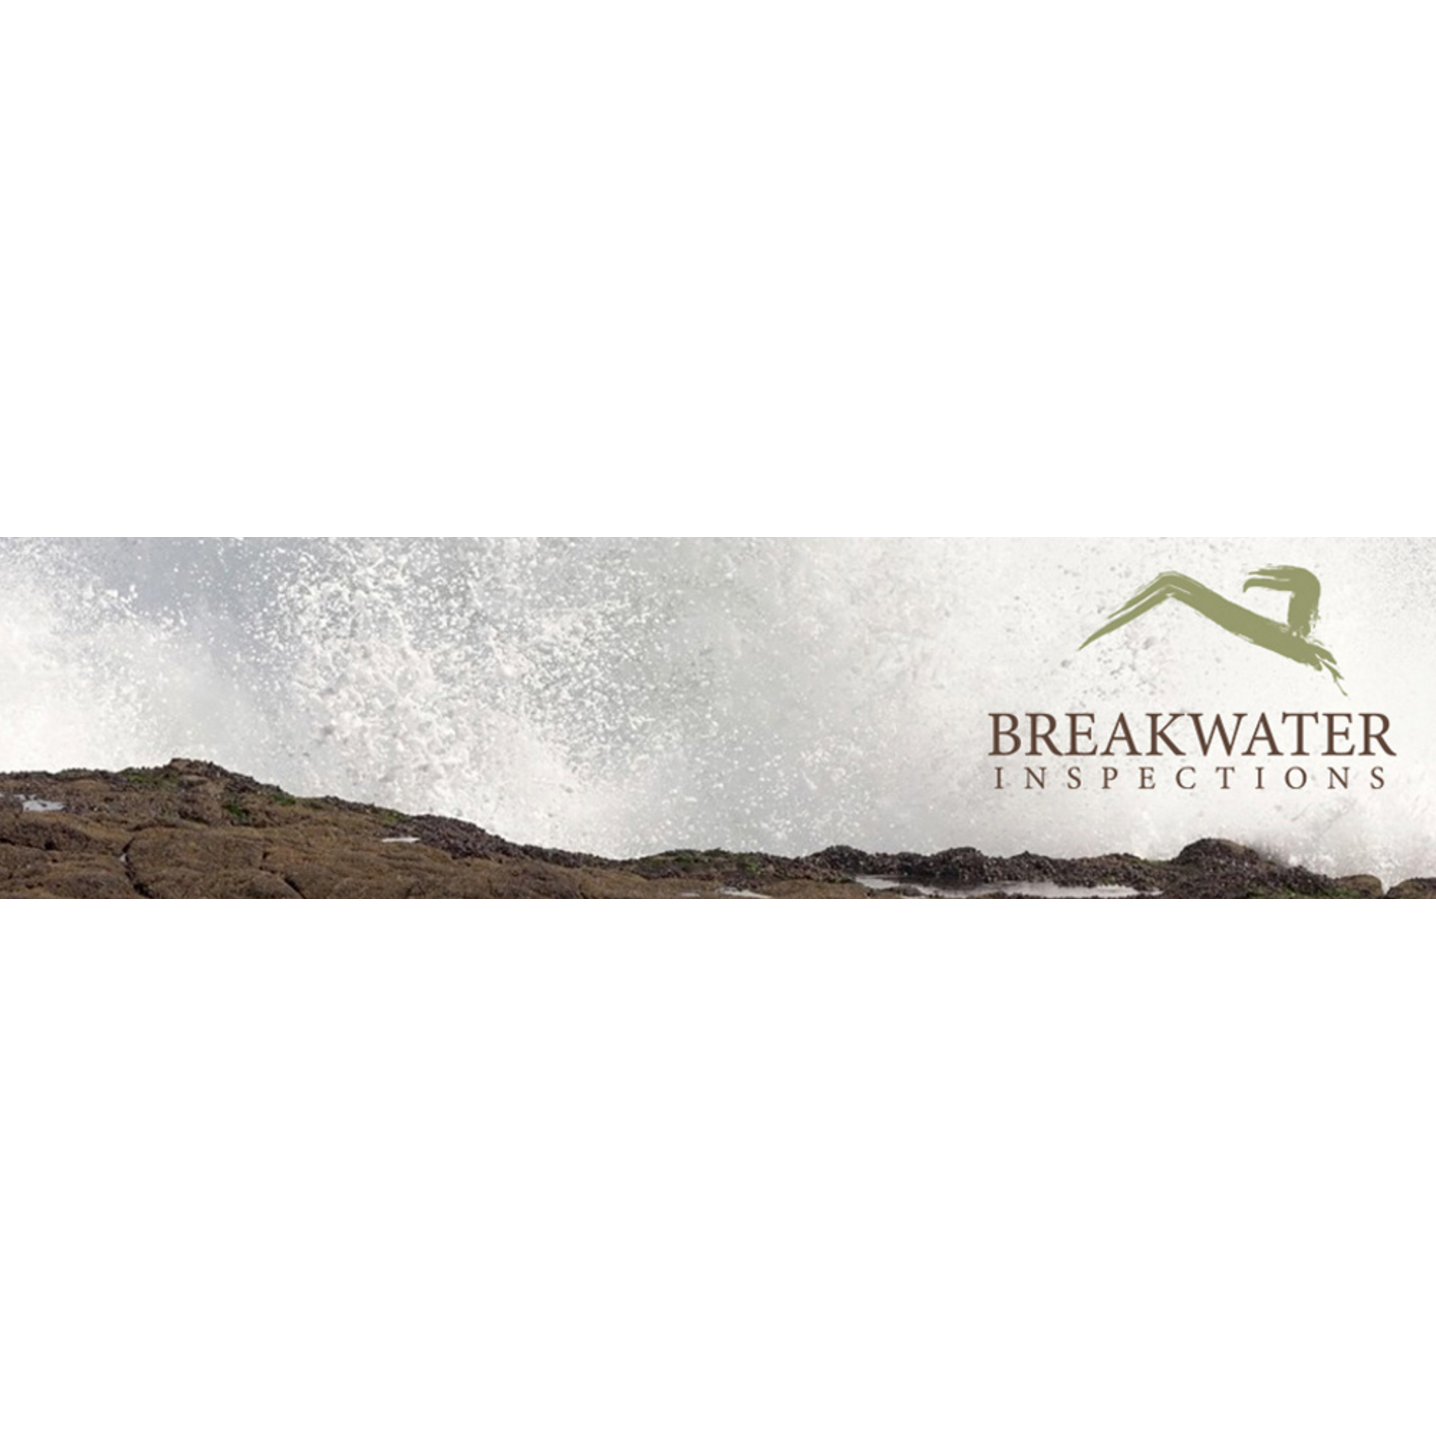 Breakwater Inspections - Rockland, ME 04841 - (207)956-0323 | ShowMeLocal.com